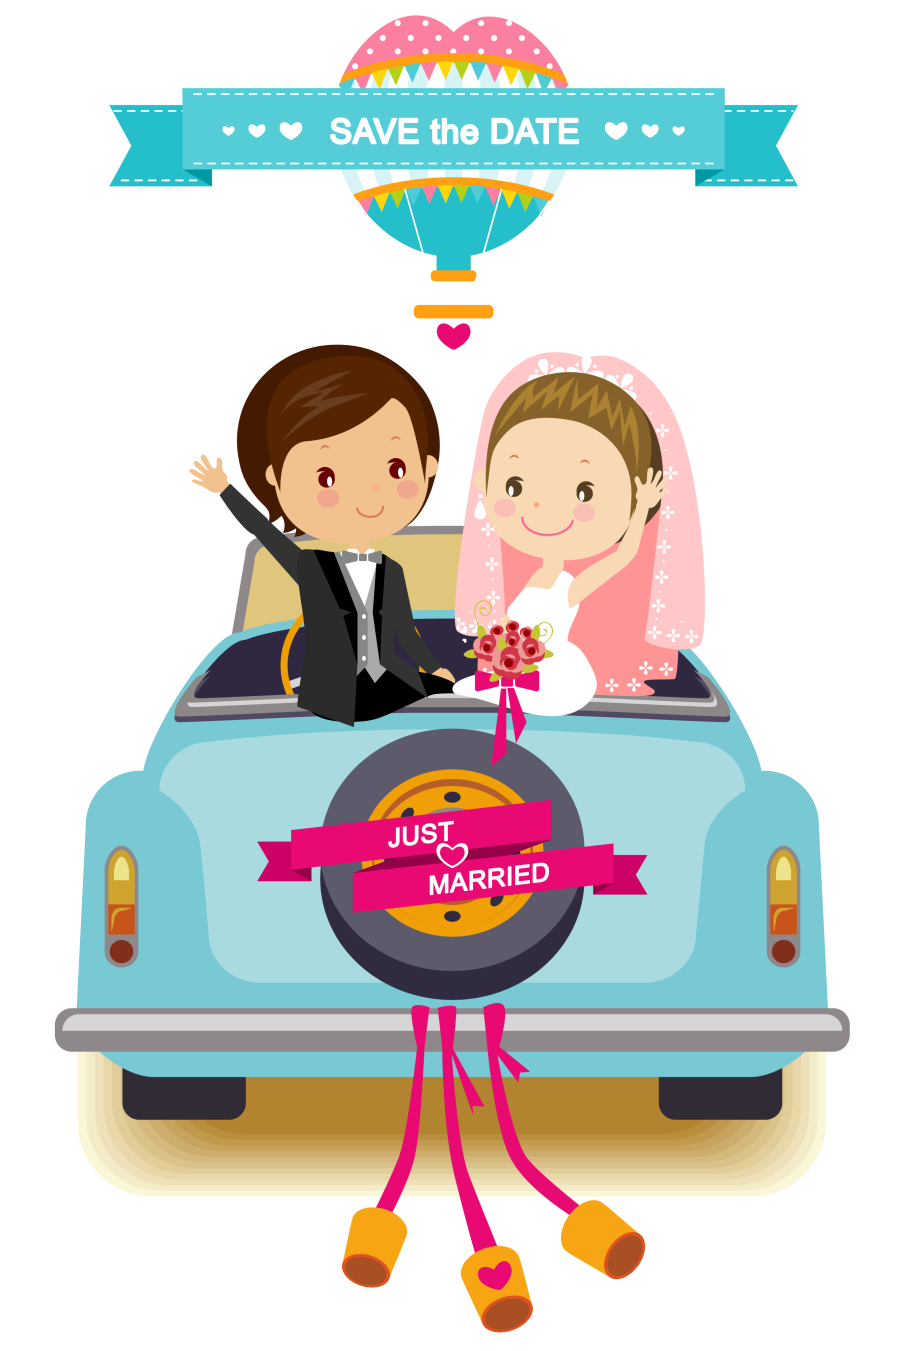 clipart free download Marriage clipart brahmin. Online wedding invitation video.